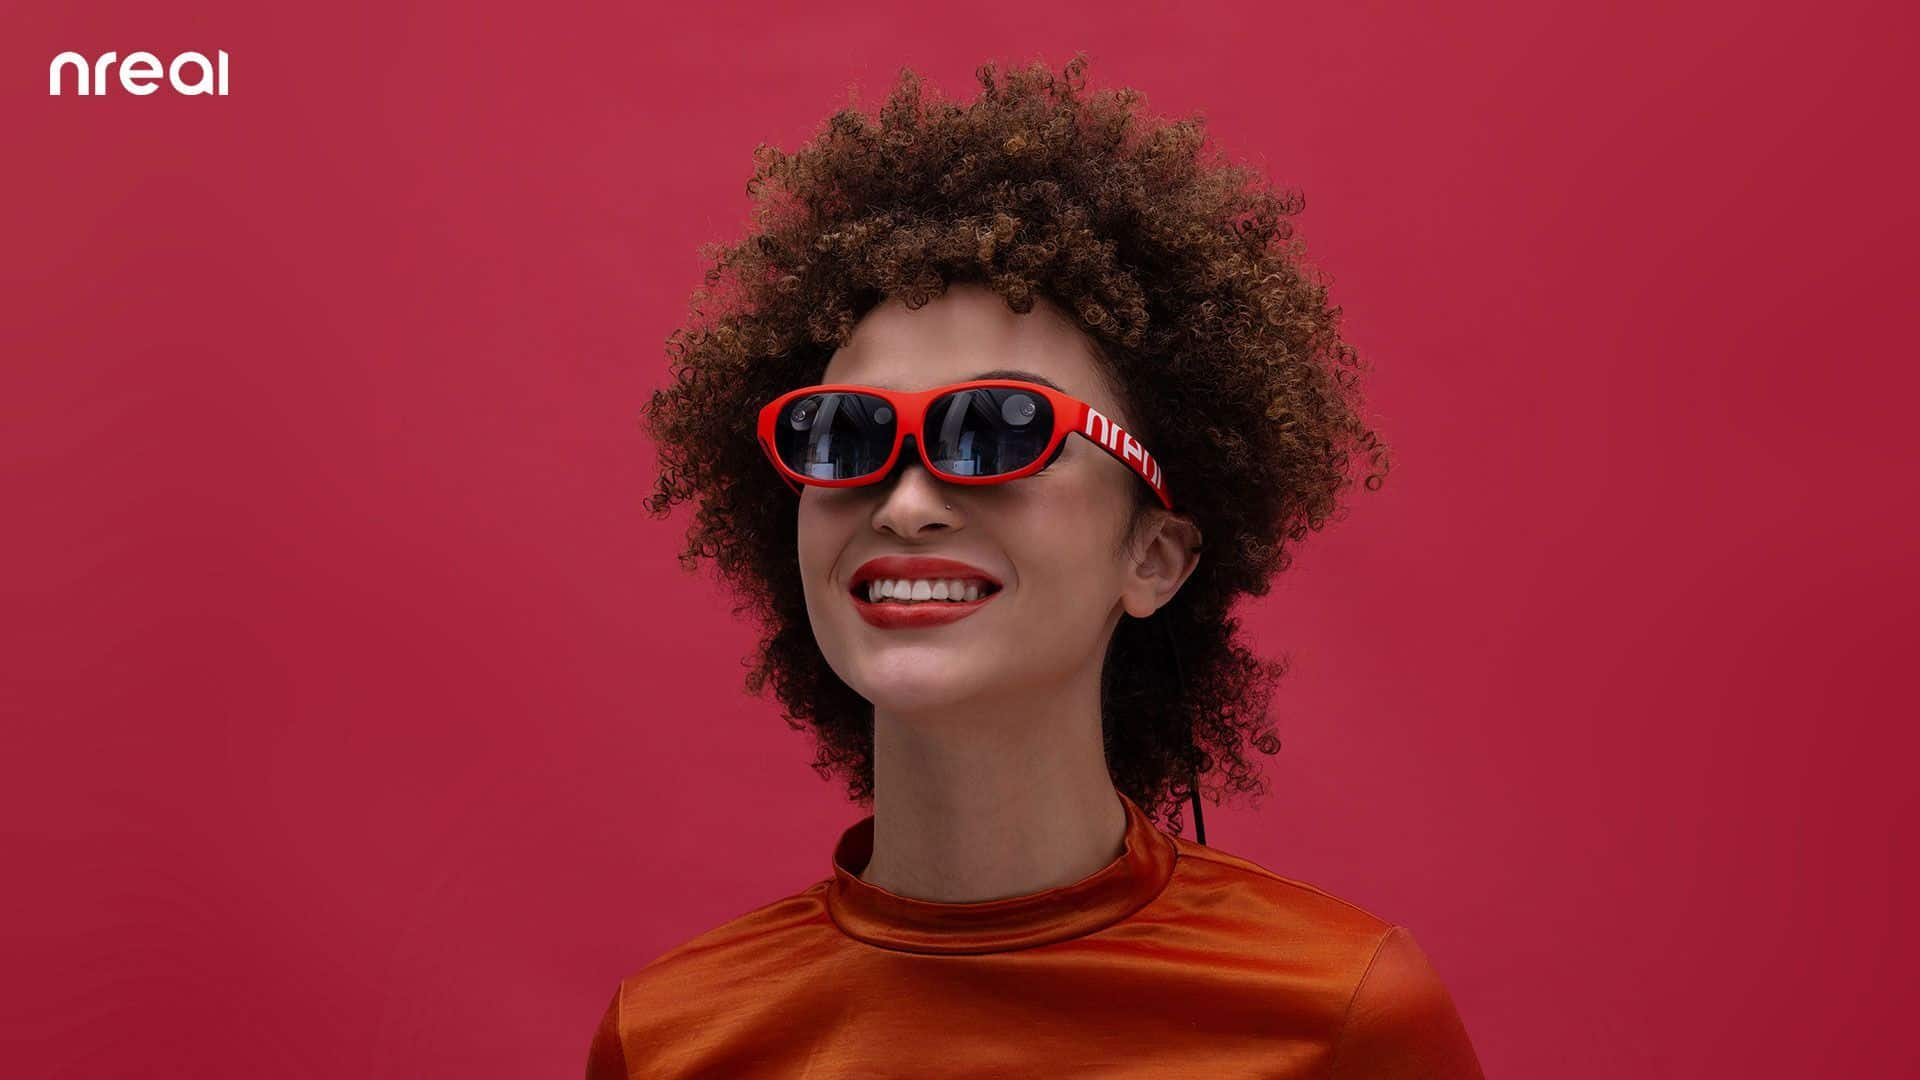 Nreal light, unas Magic Leap chinas que tan sólo pesan 85 gramos